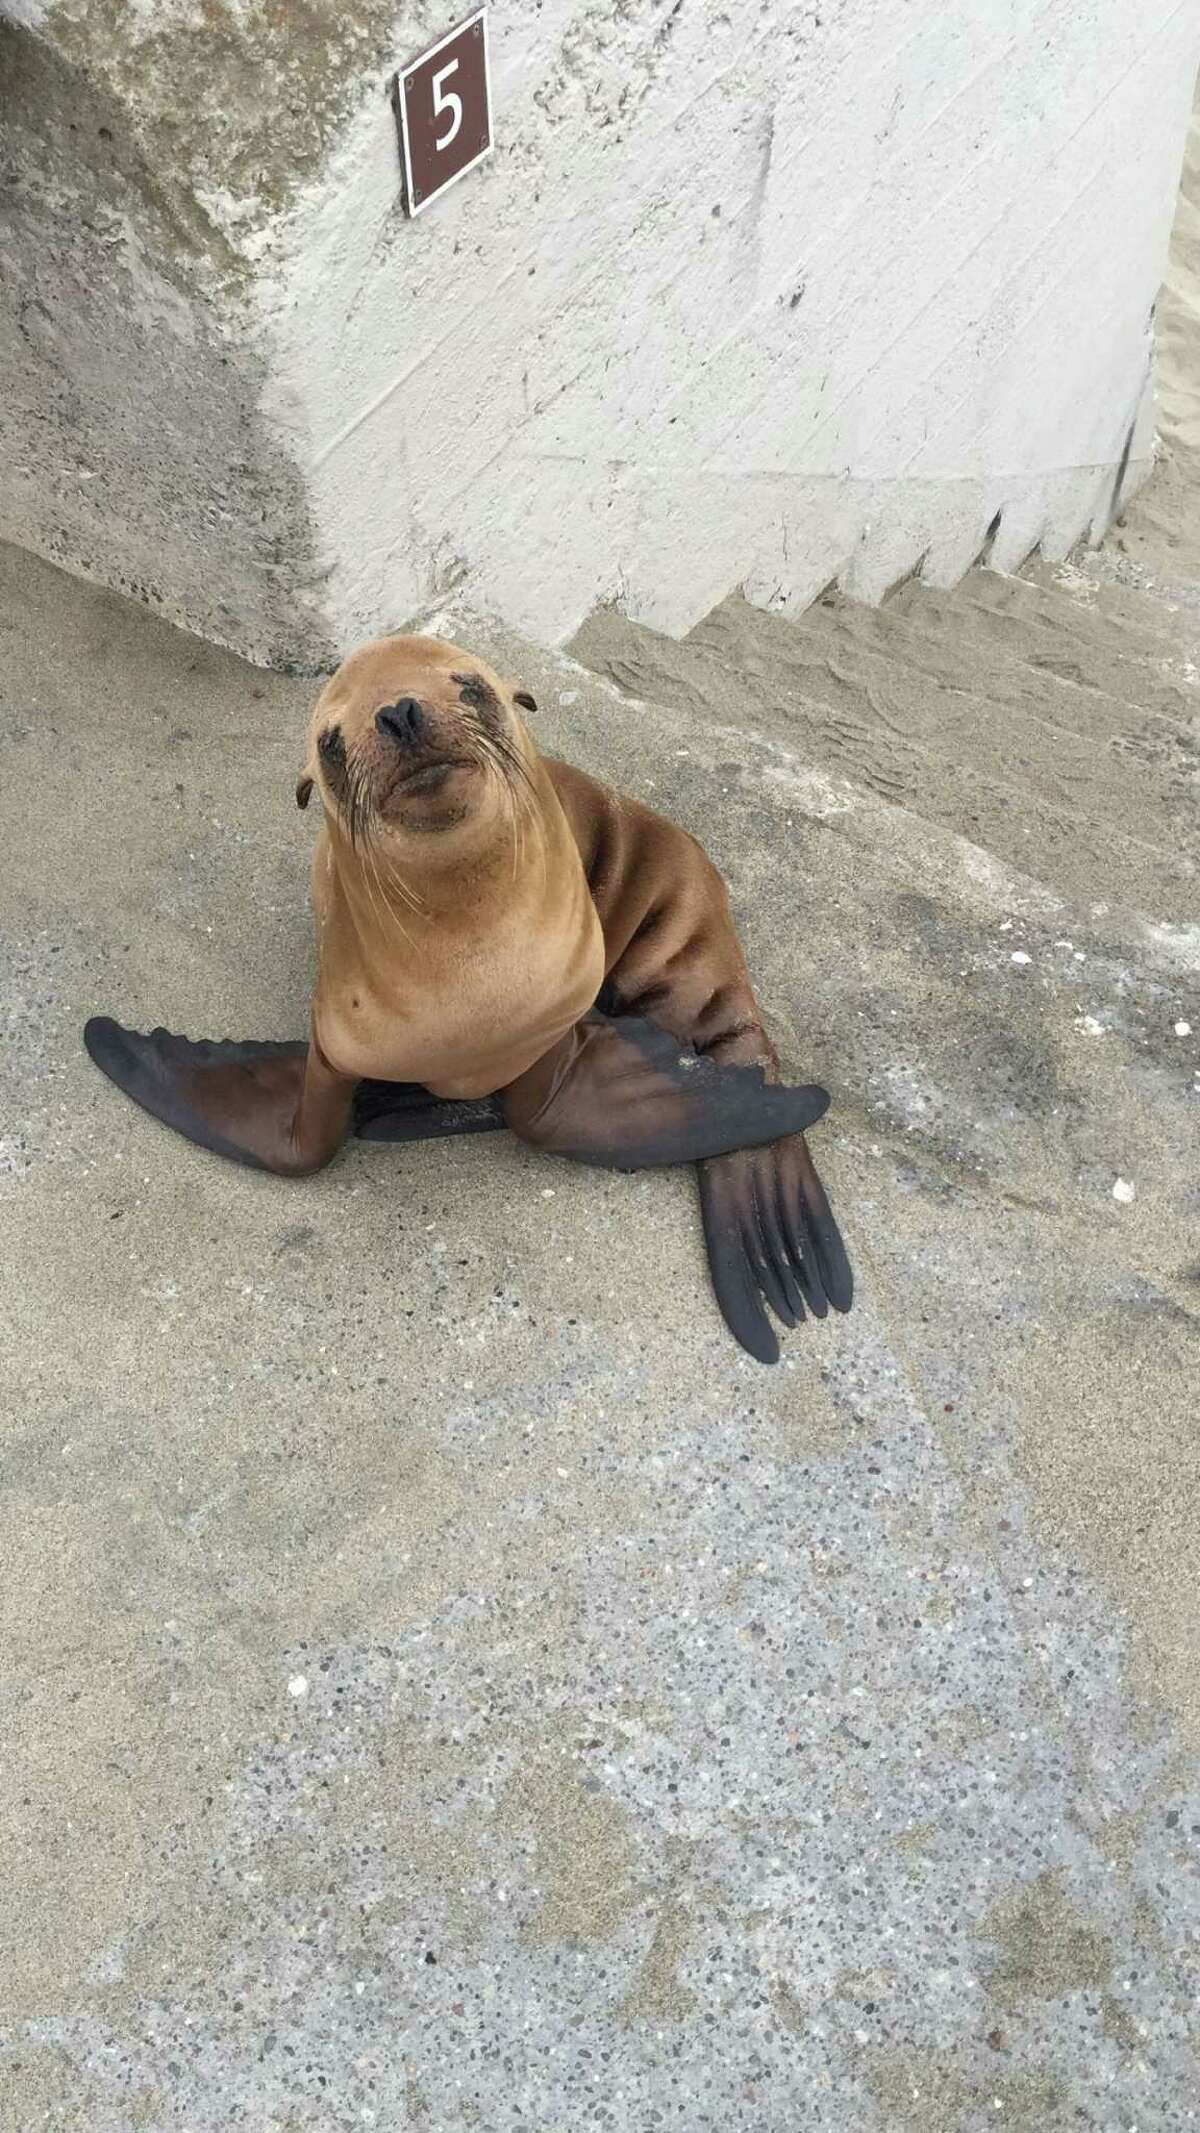 A sea lion pup in San Francisco.